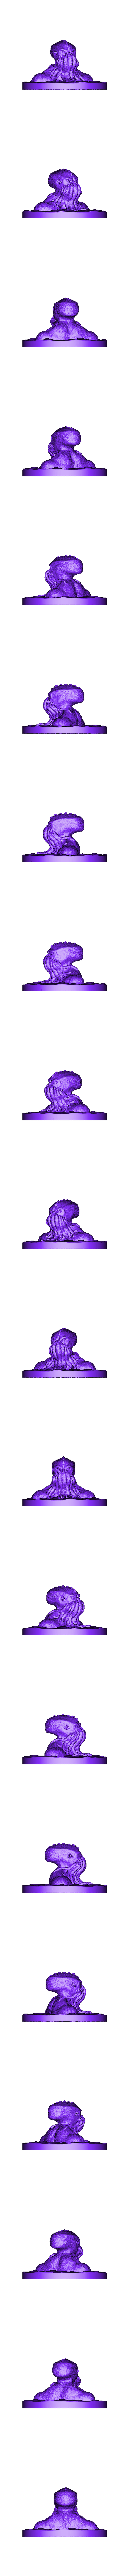 Cthulhu_bust.stl Download free OBJ file Cthulhu Bust • Object to 3D print, CarlCreates